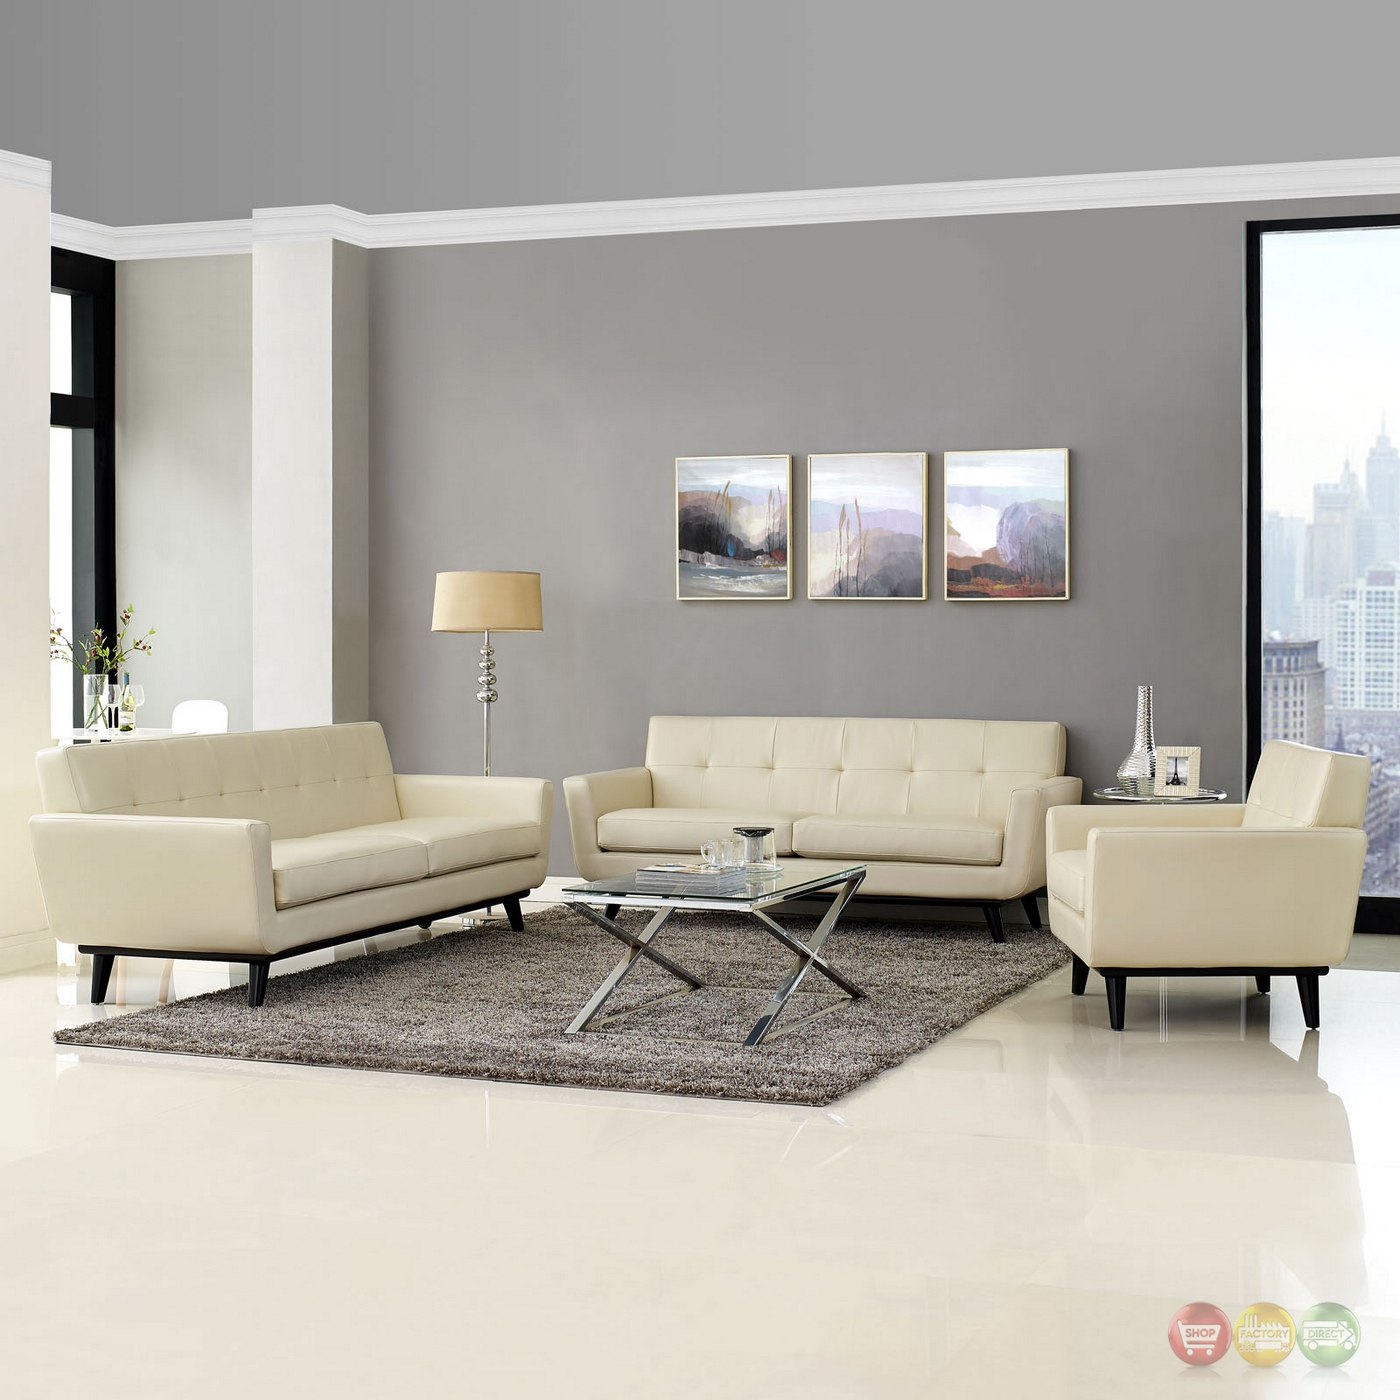 Engage Contemporary 3pc Button Tufted Leather Living Room